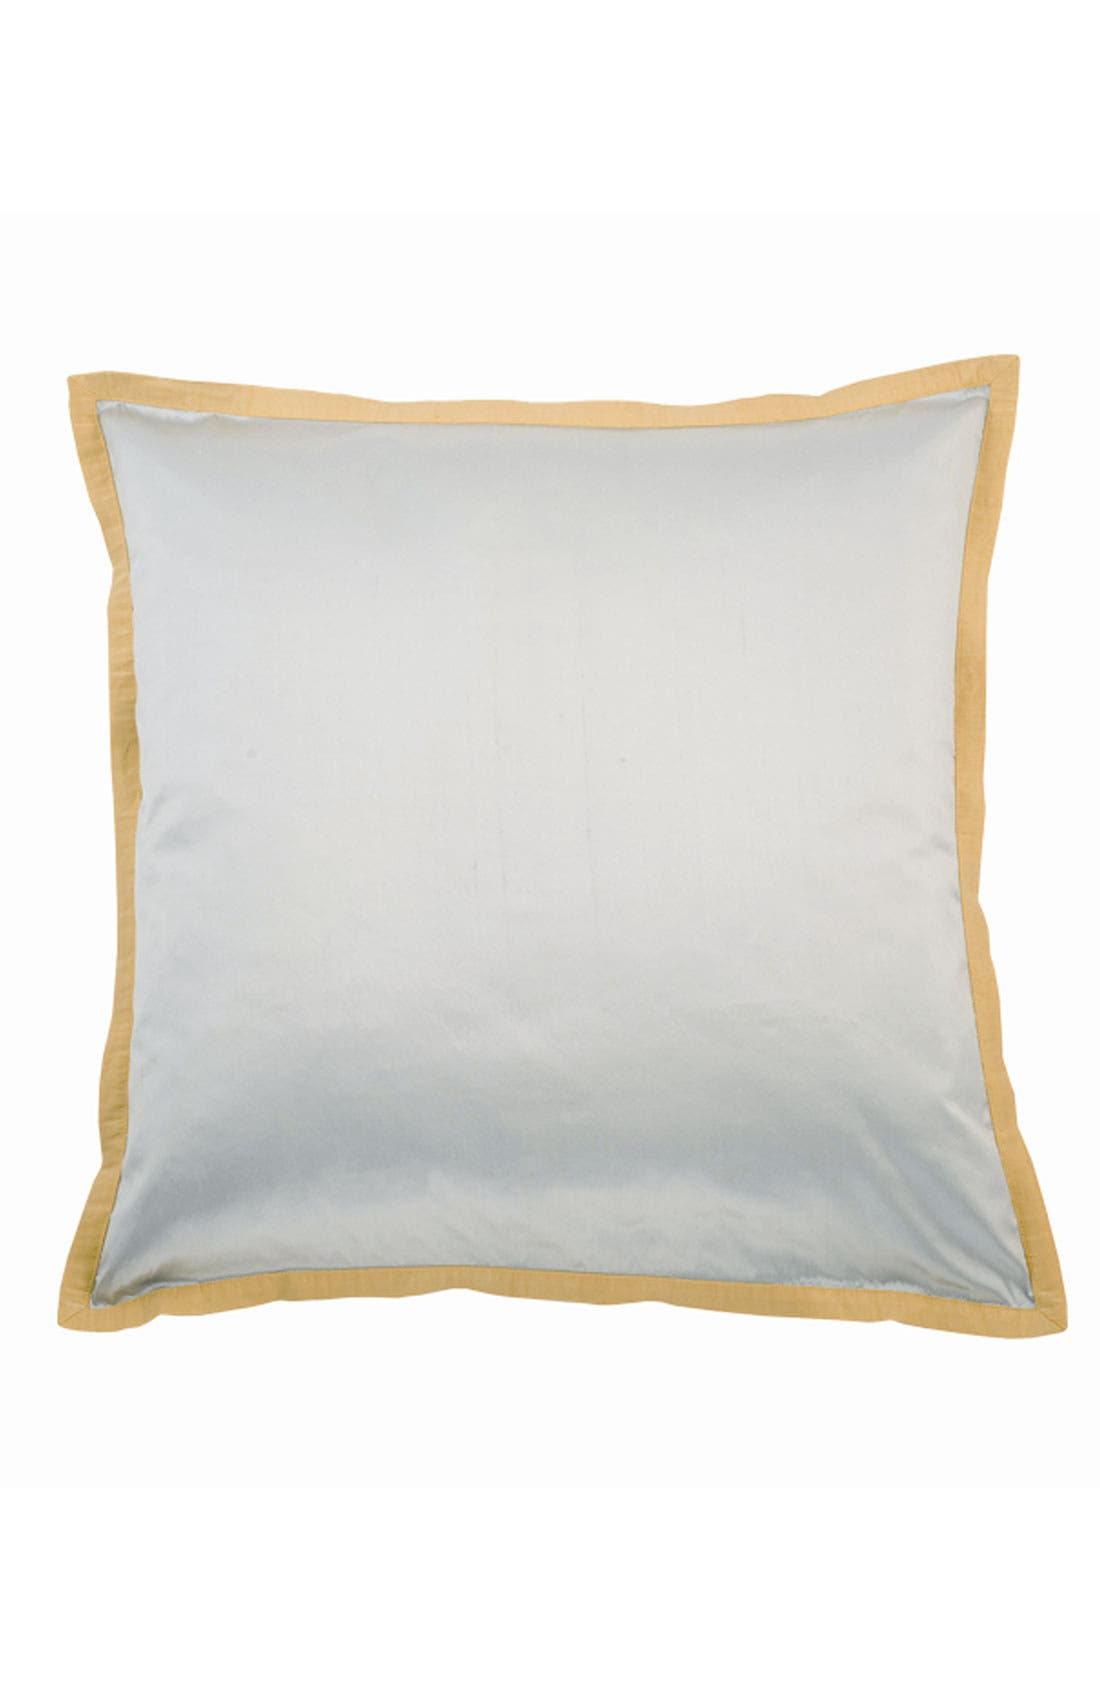 Alternate Image 1 Selected - Blissliving Home 'Caltha' Reversible Euro Pillow (Online Only)